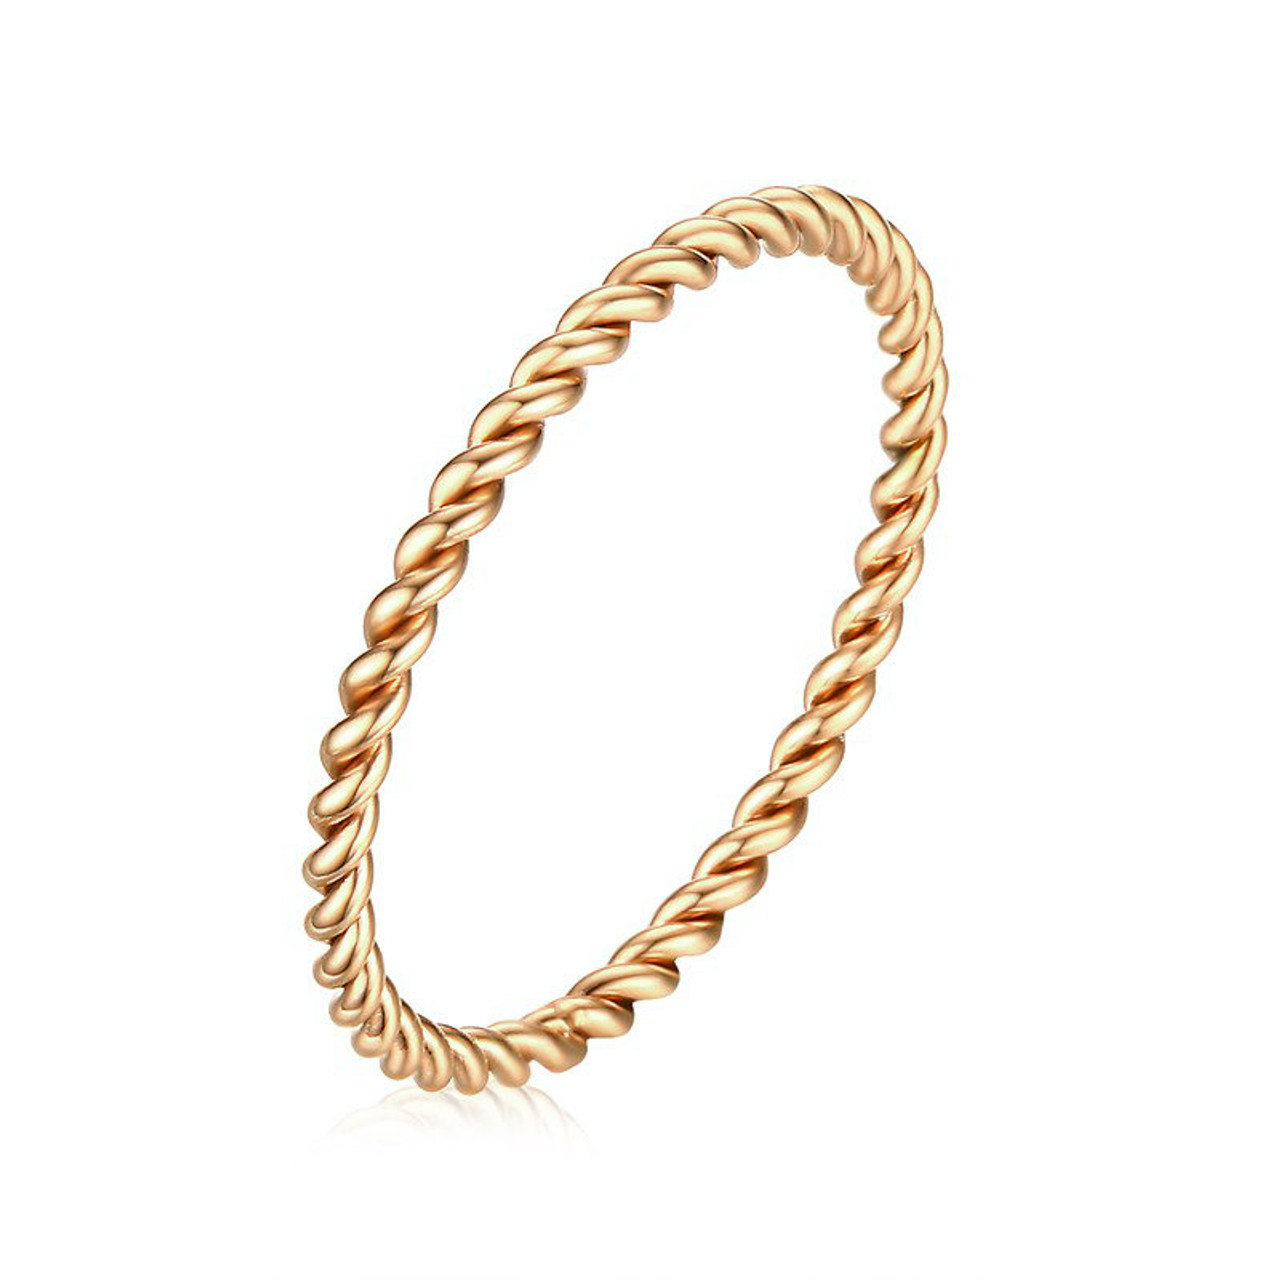 14k gold twist band